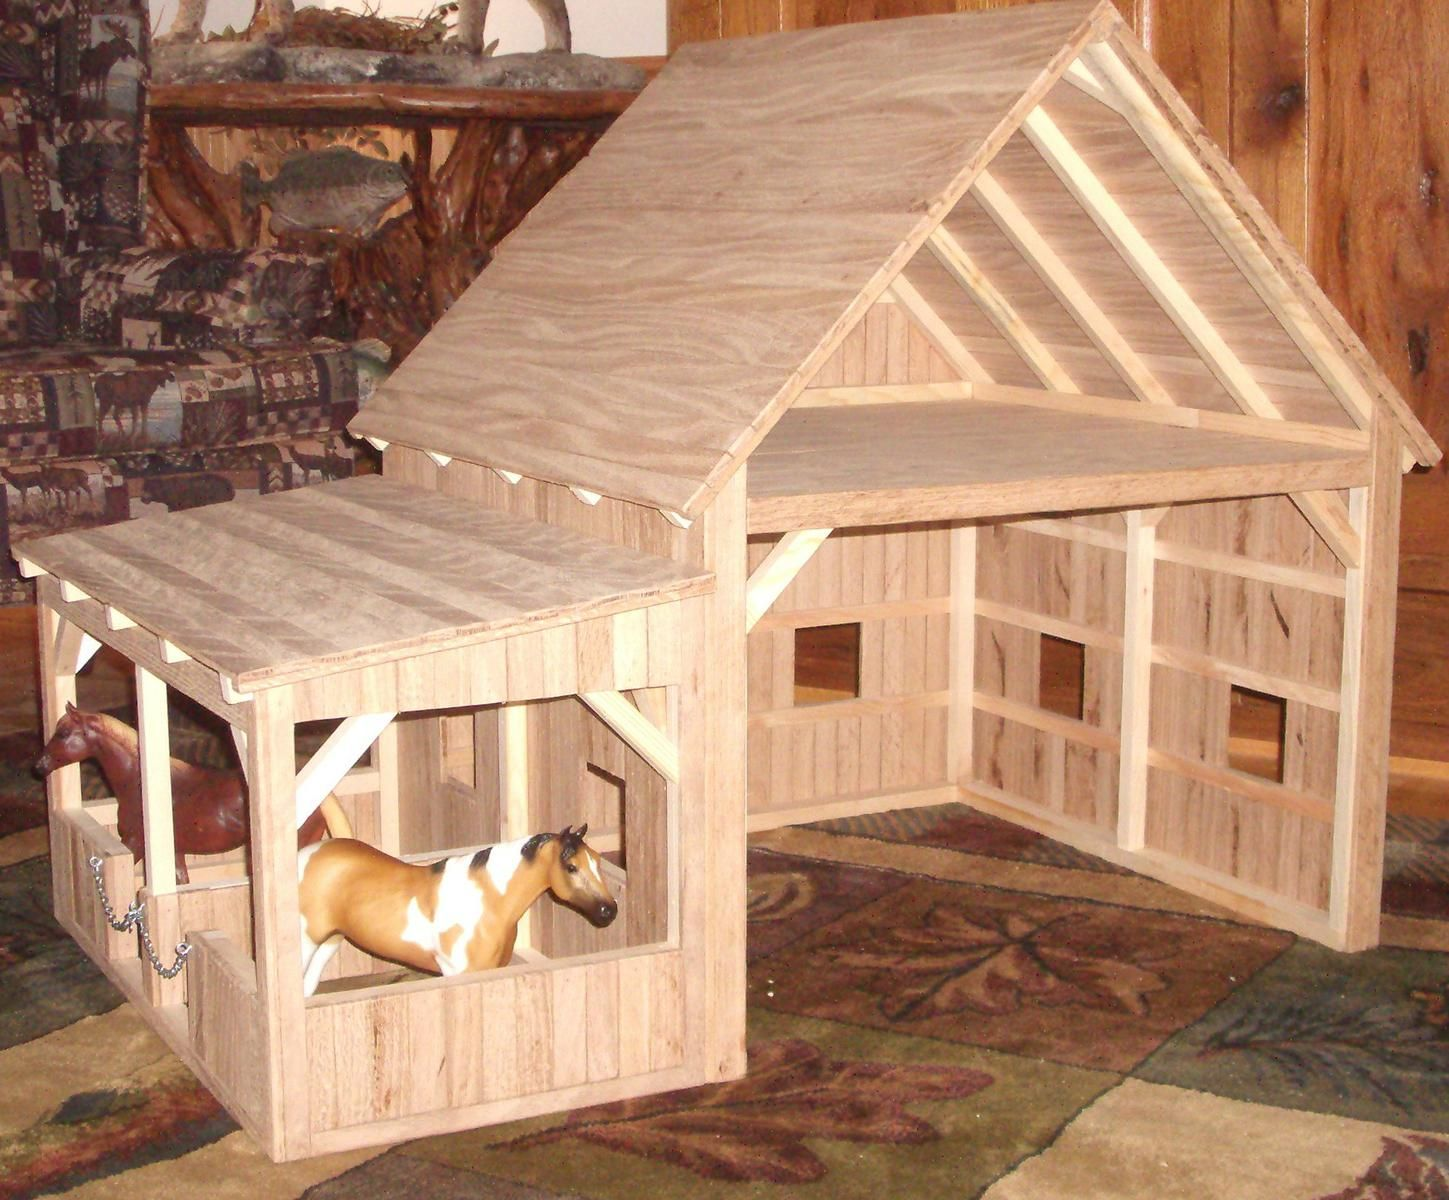 Hand Crafted Wooden Toy Barn #7 by Wild Cat Hollow ...